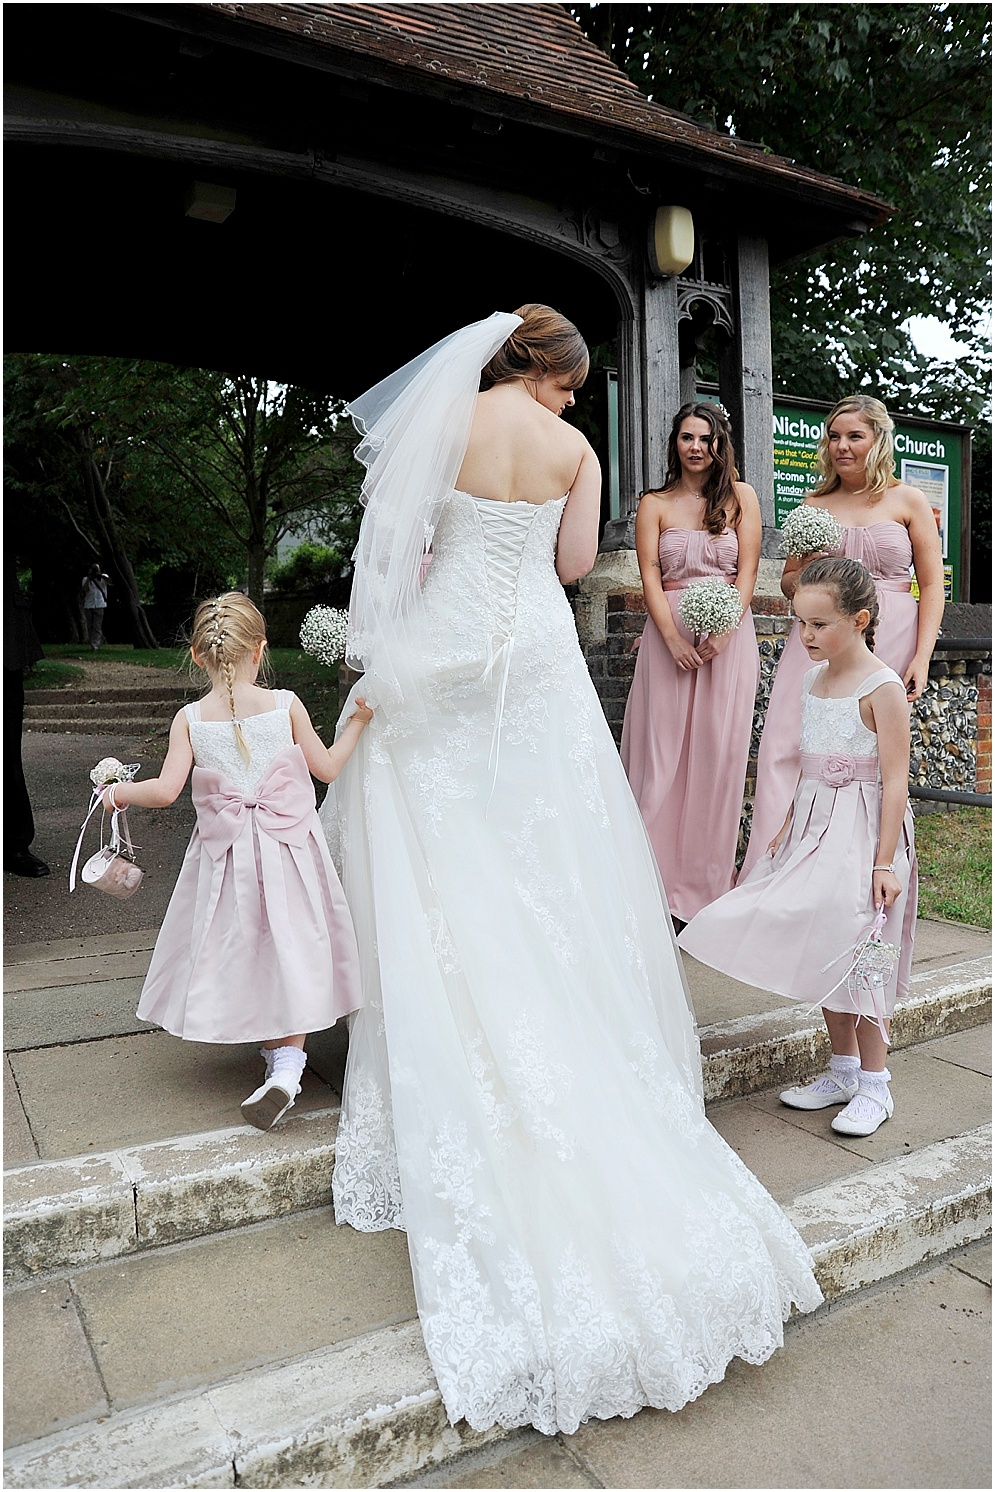 Bride and her bridesmaids arrive at church.